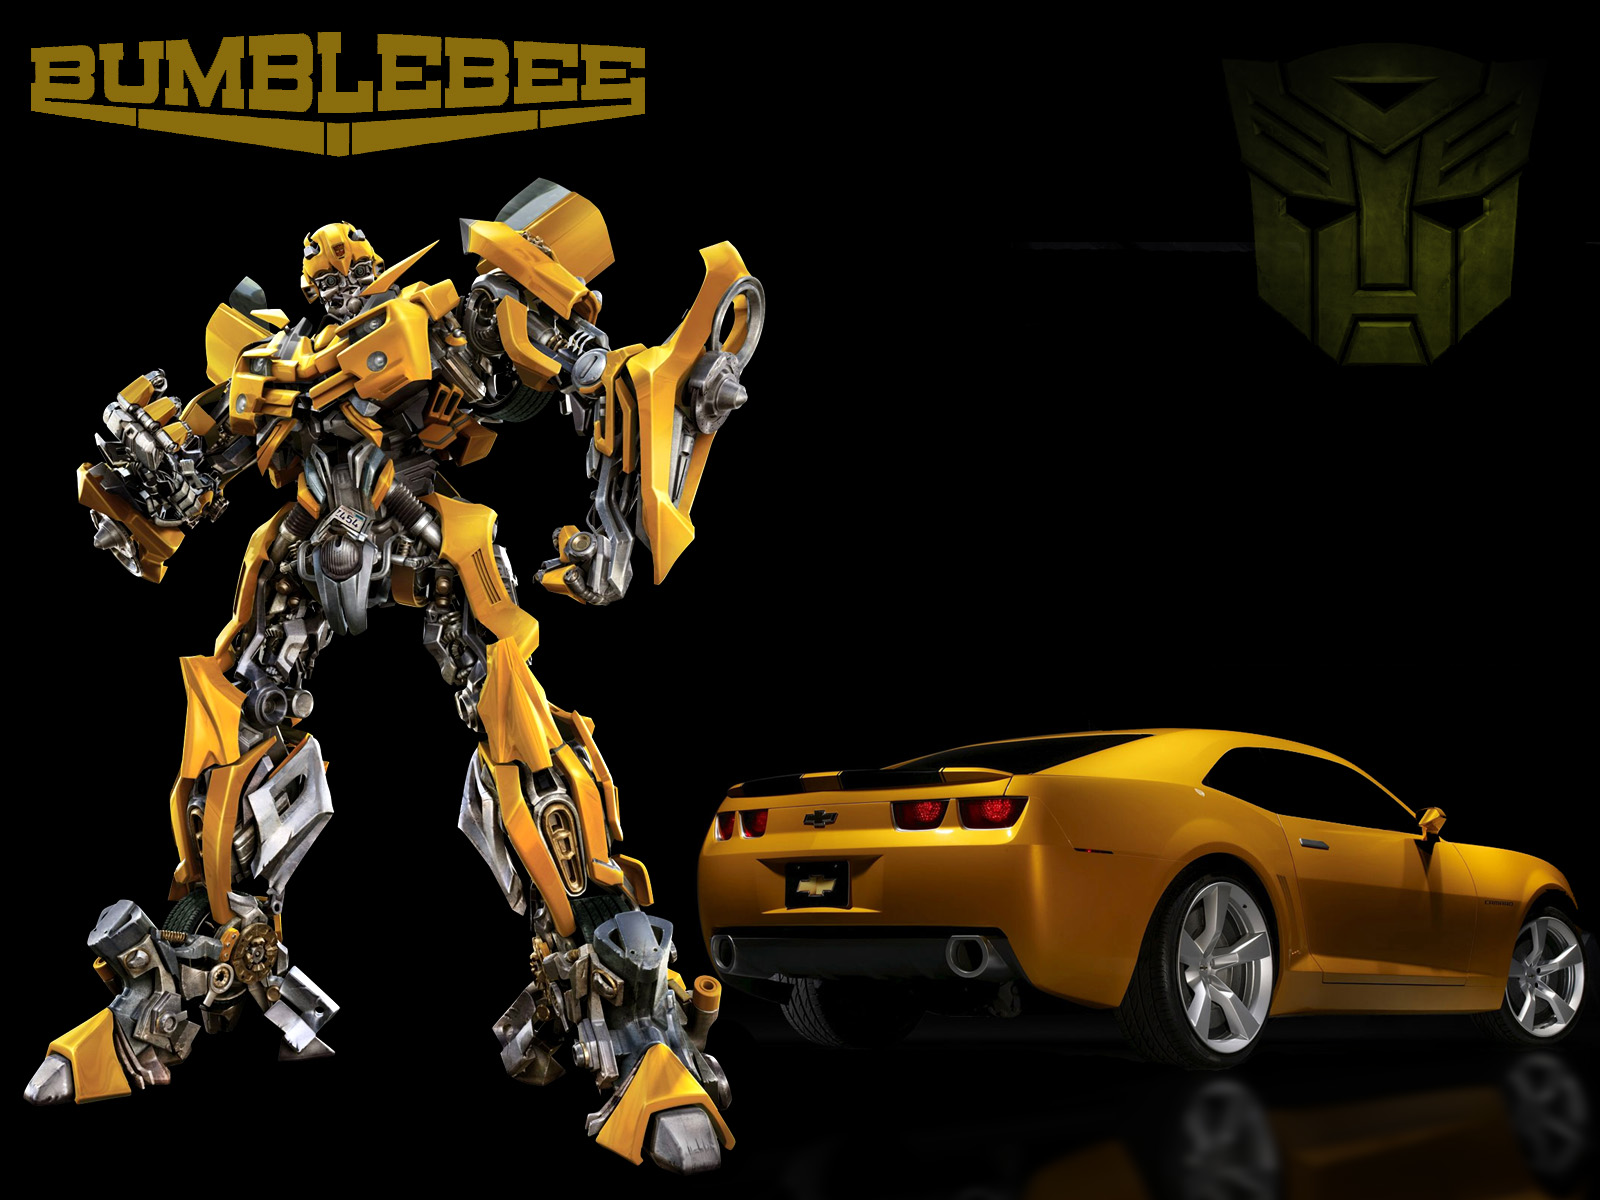 Transformers Hot New Movies Cars Wallpaper 25784329